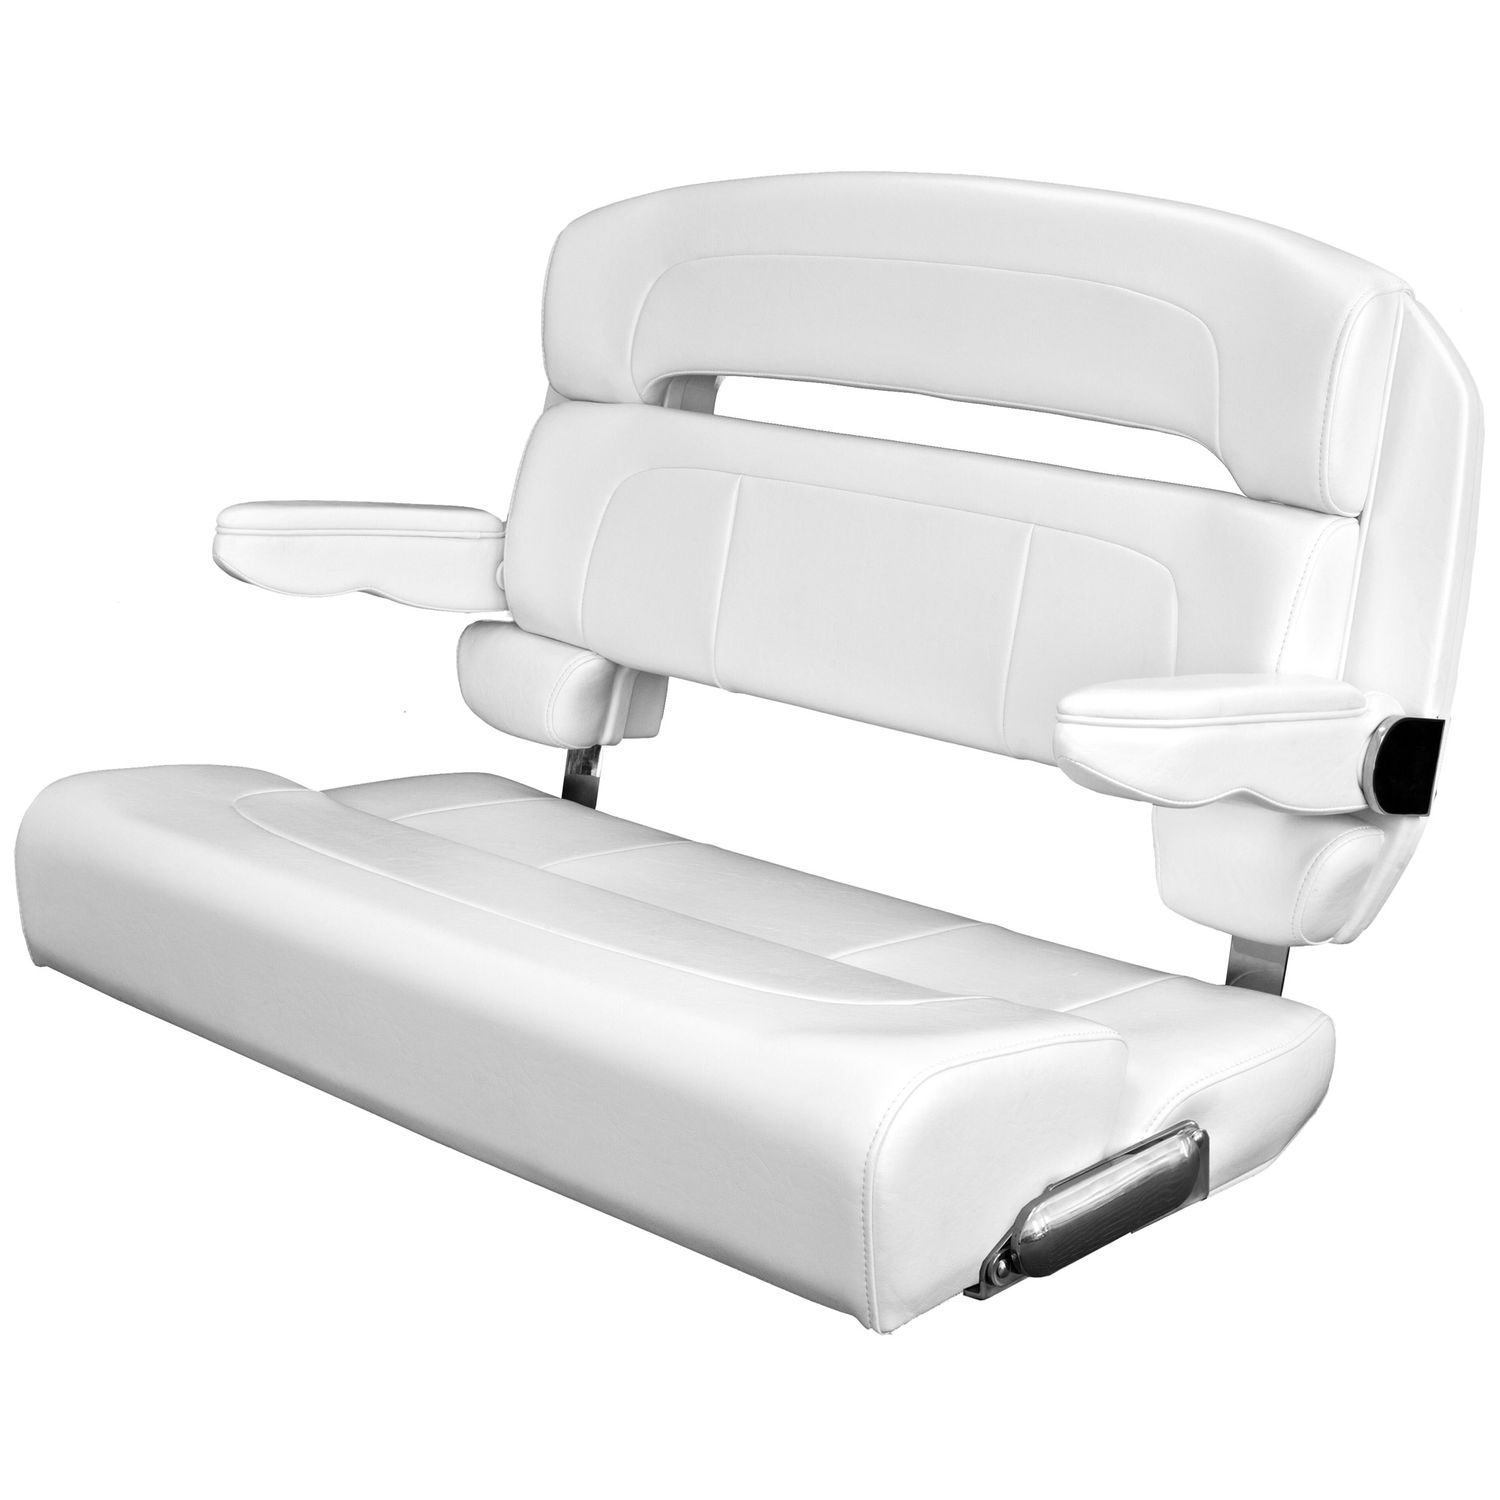 Helm Seat For Boats With Armrests 2 Person Ha1 36 40